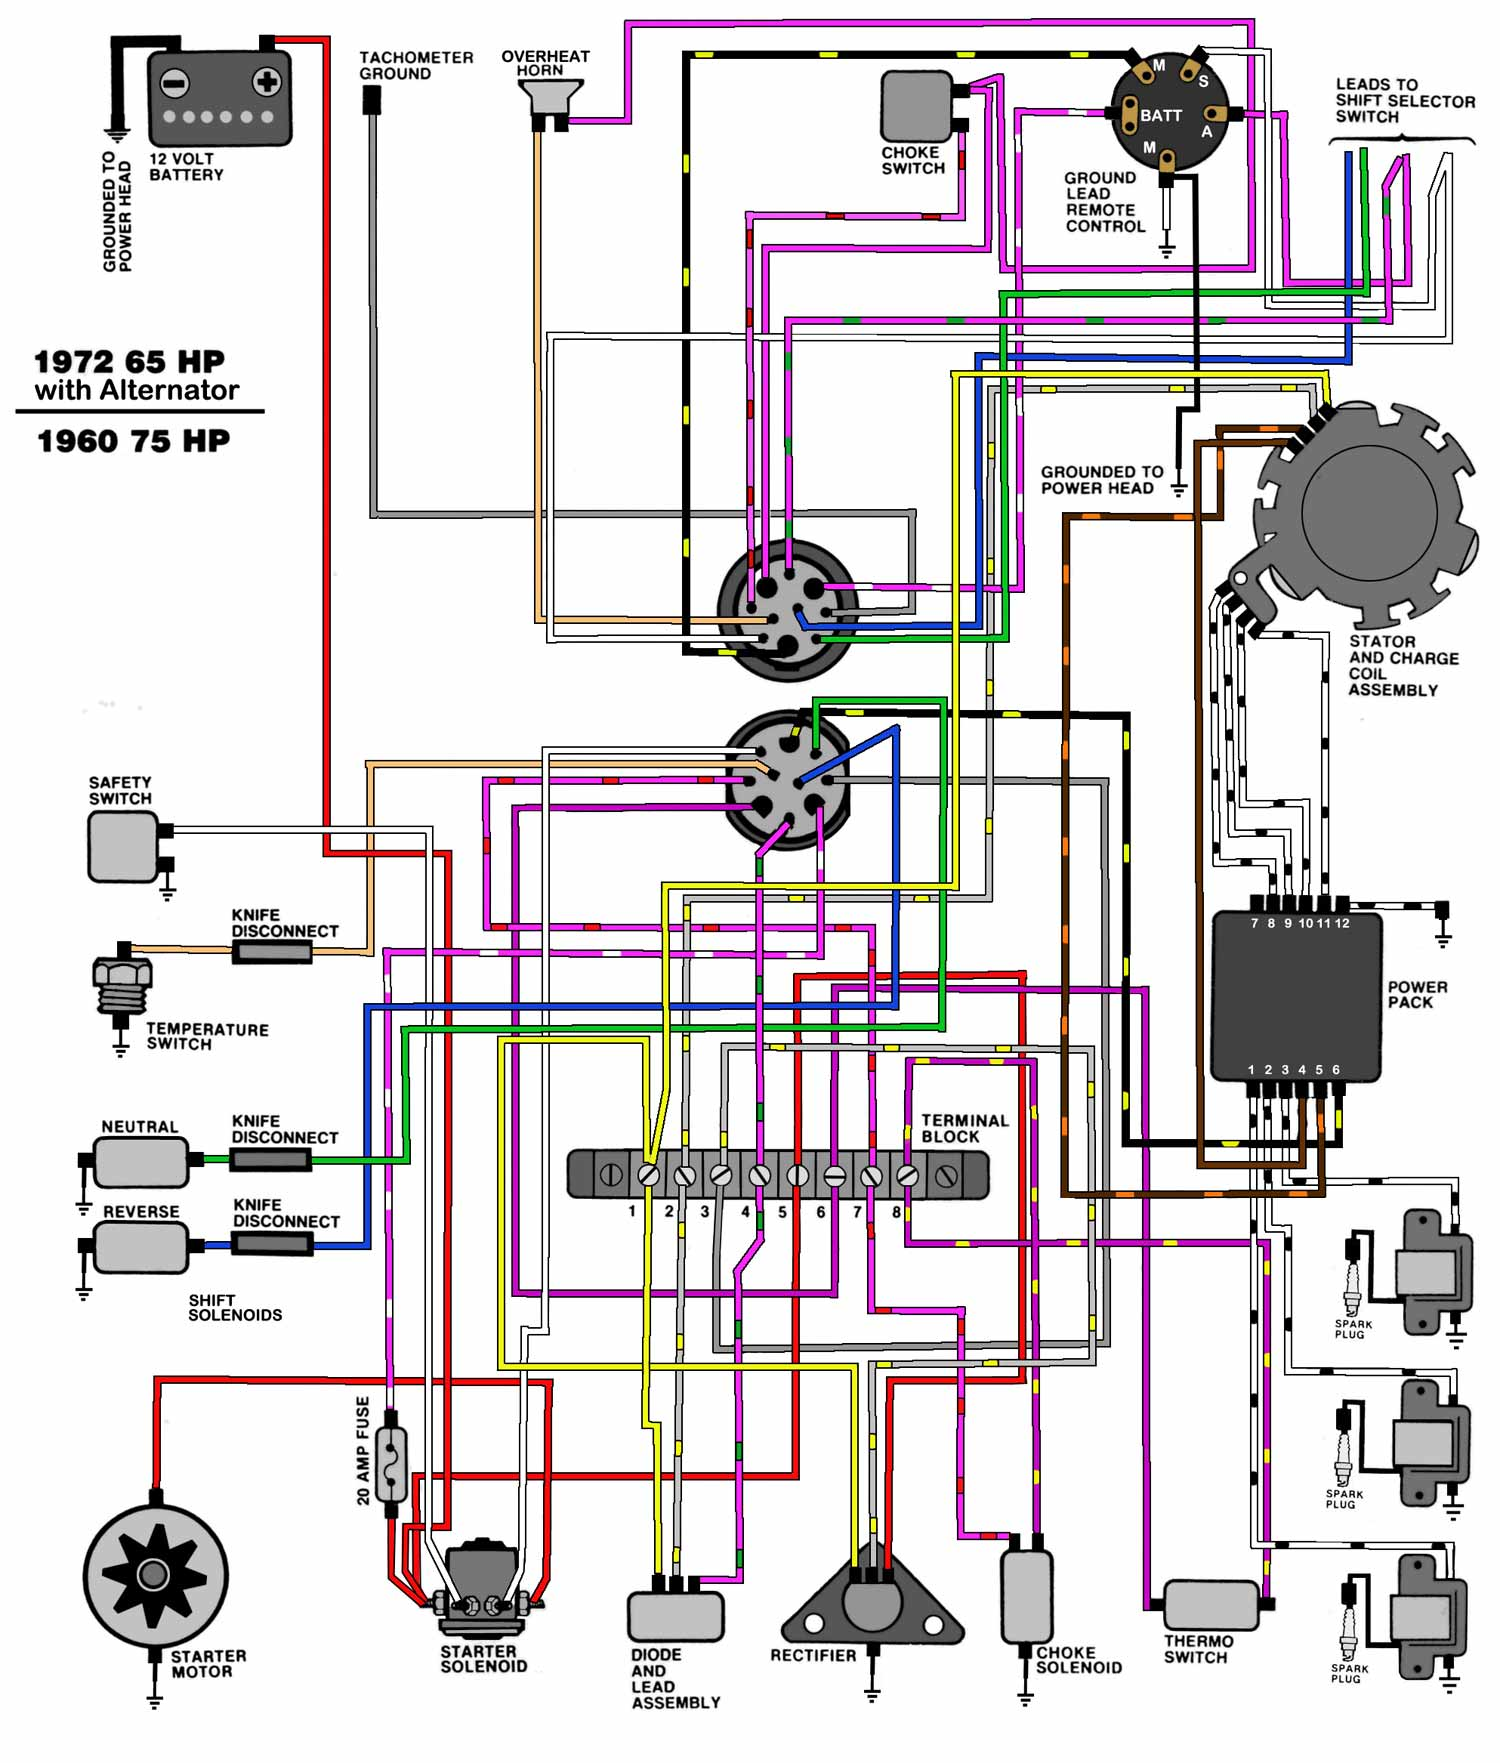 Evinrude Outboard Tachometer Wiring Diagram Free Download ...